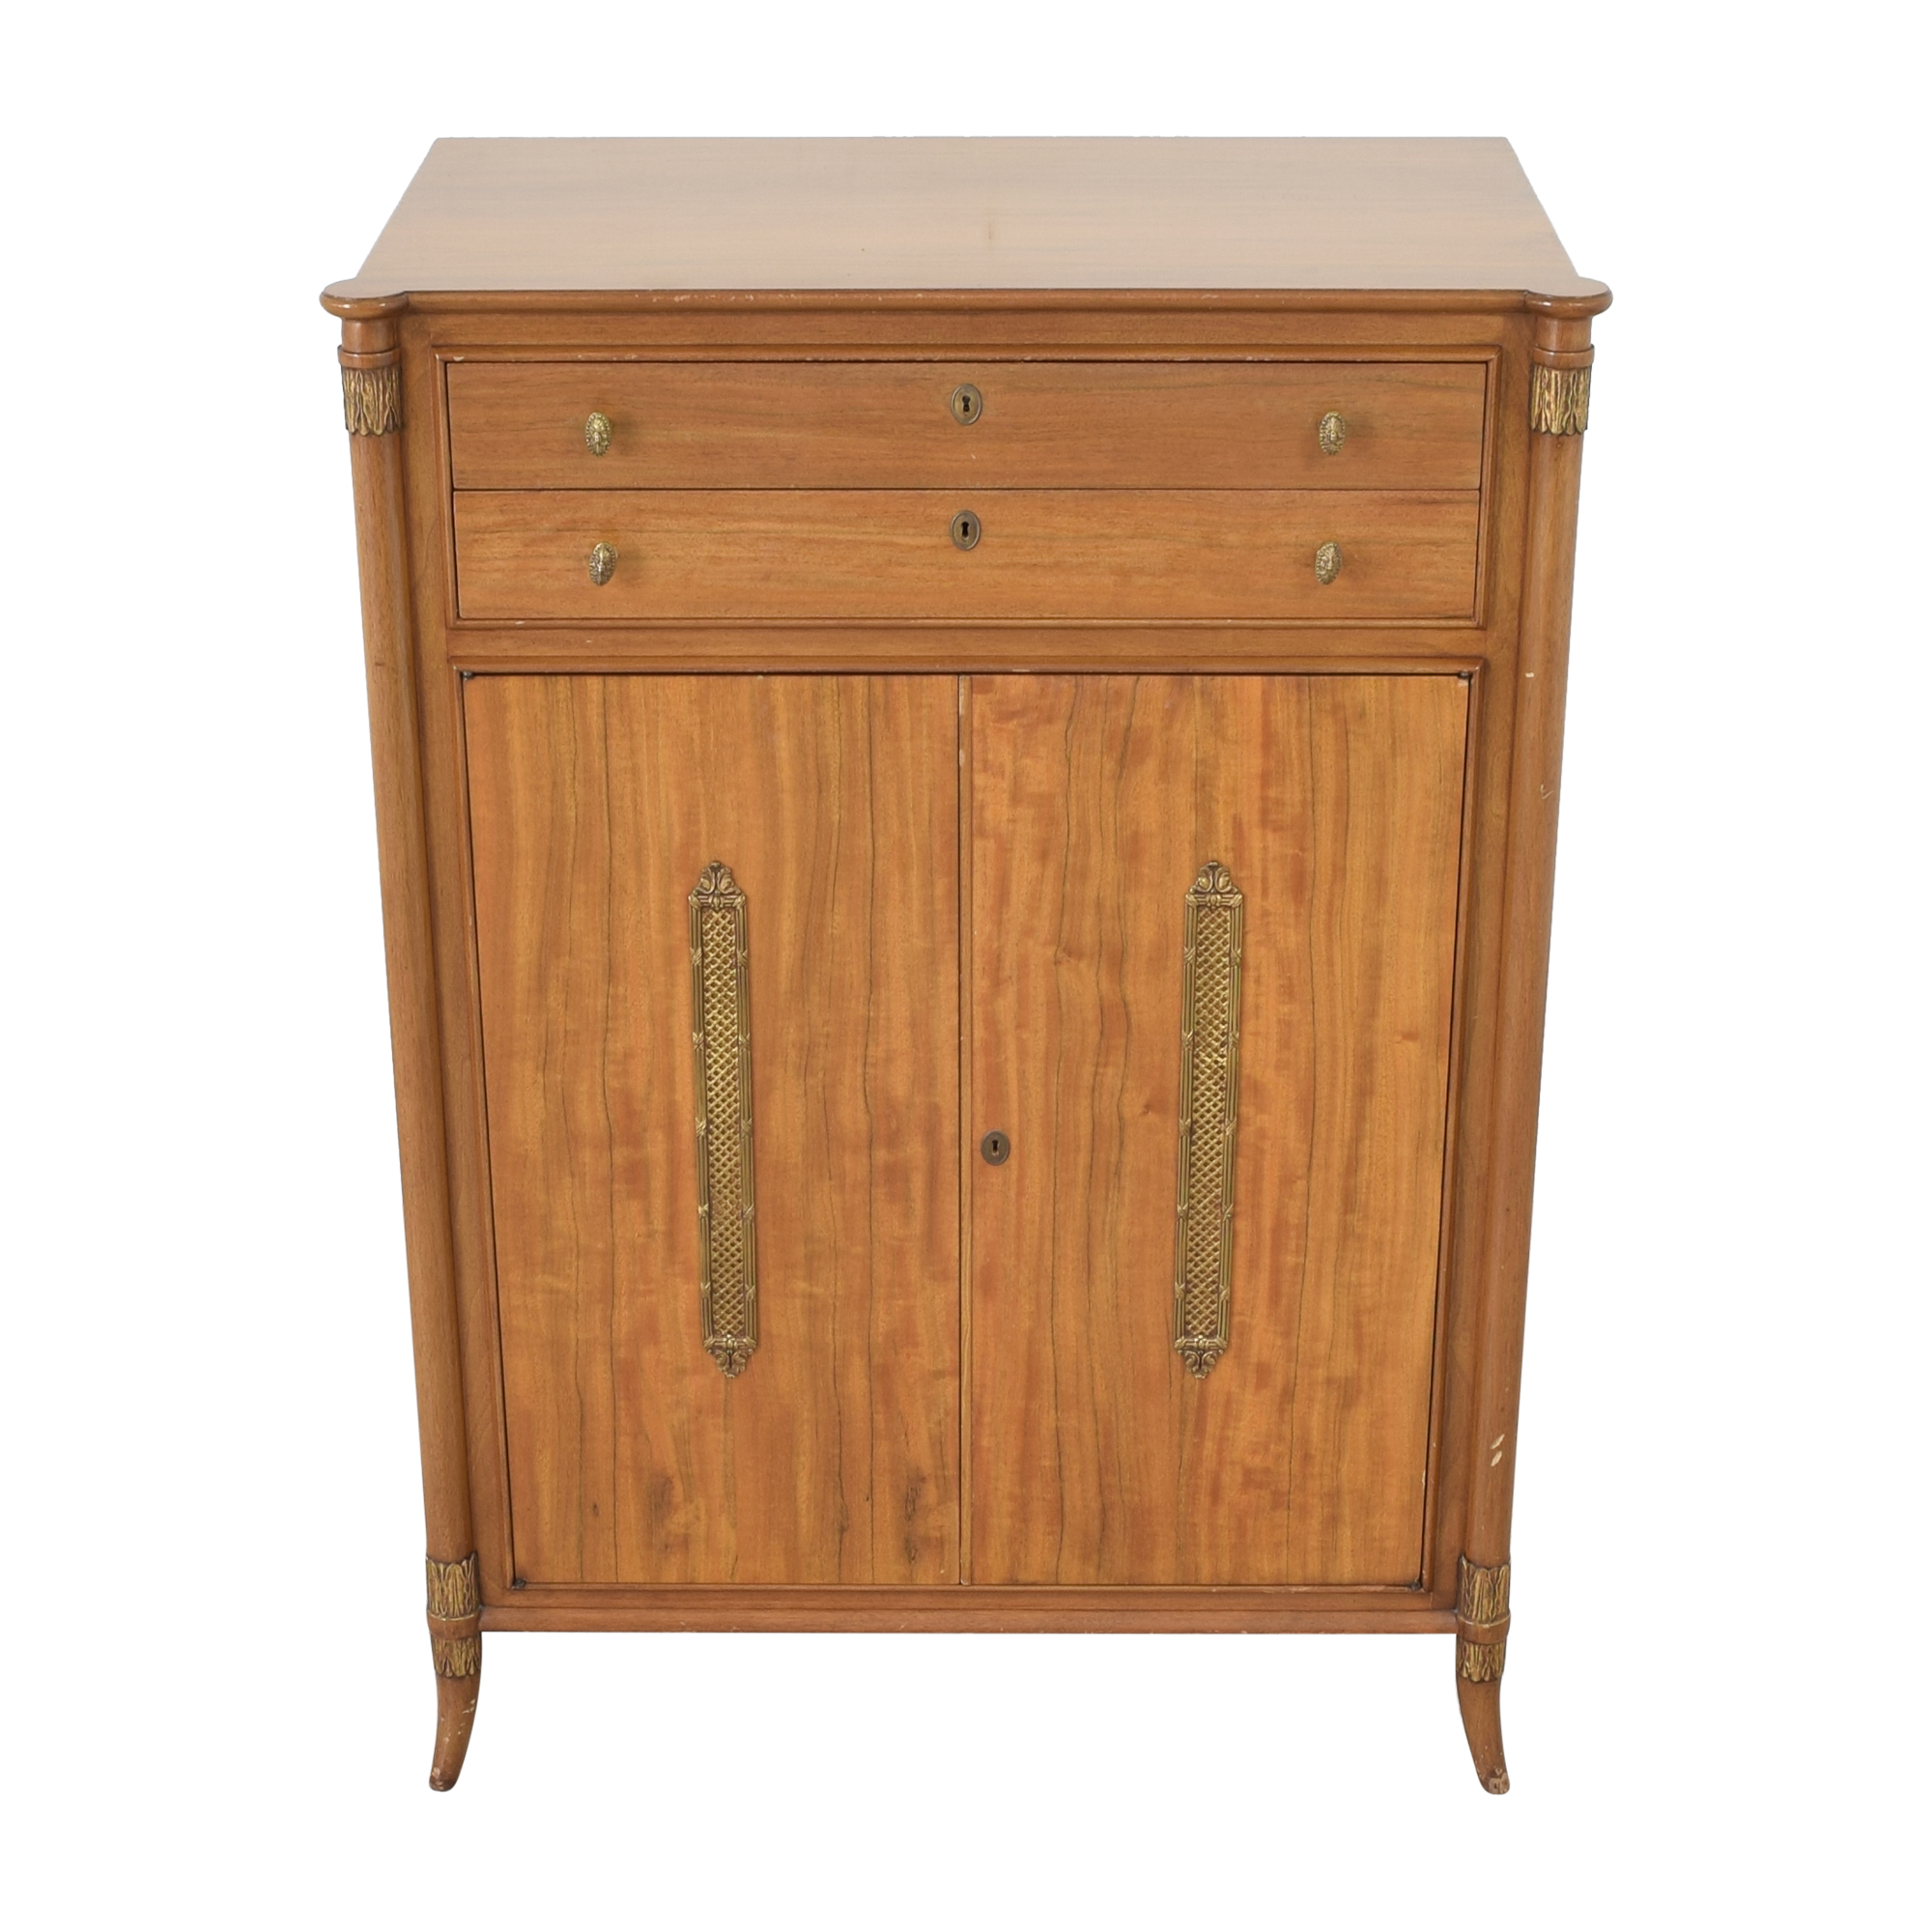 Albano Albano Mid Century Chest of Drawers second hand